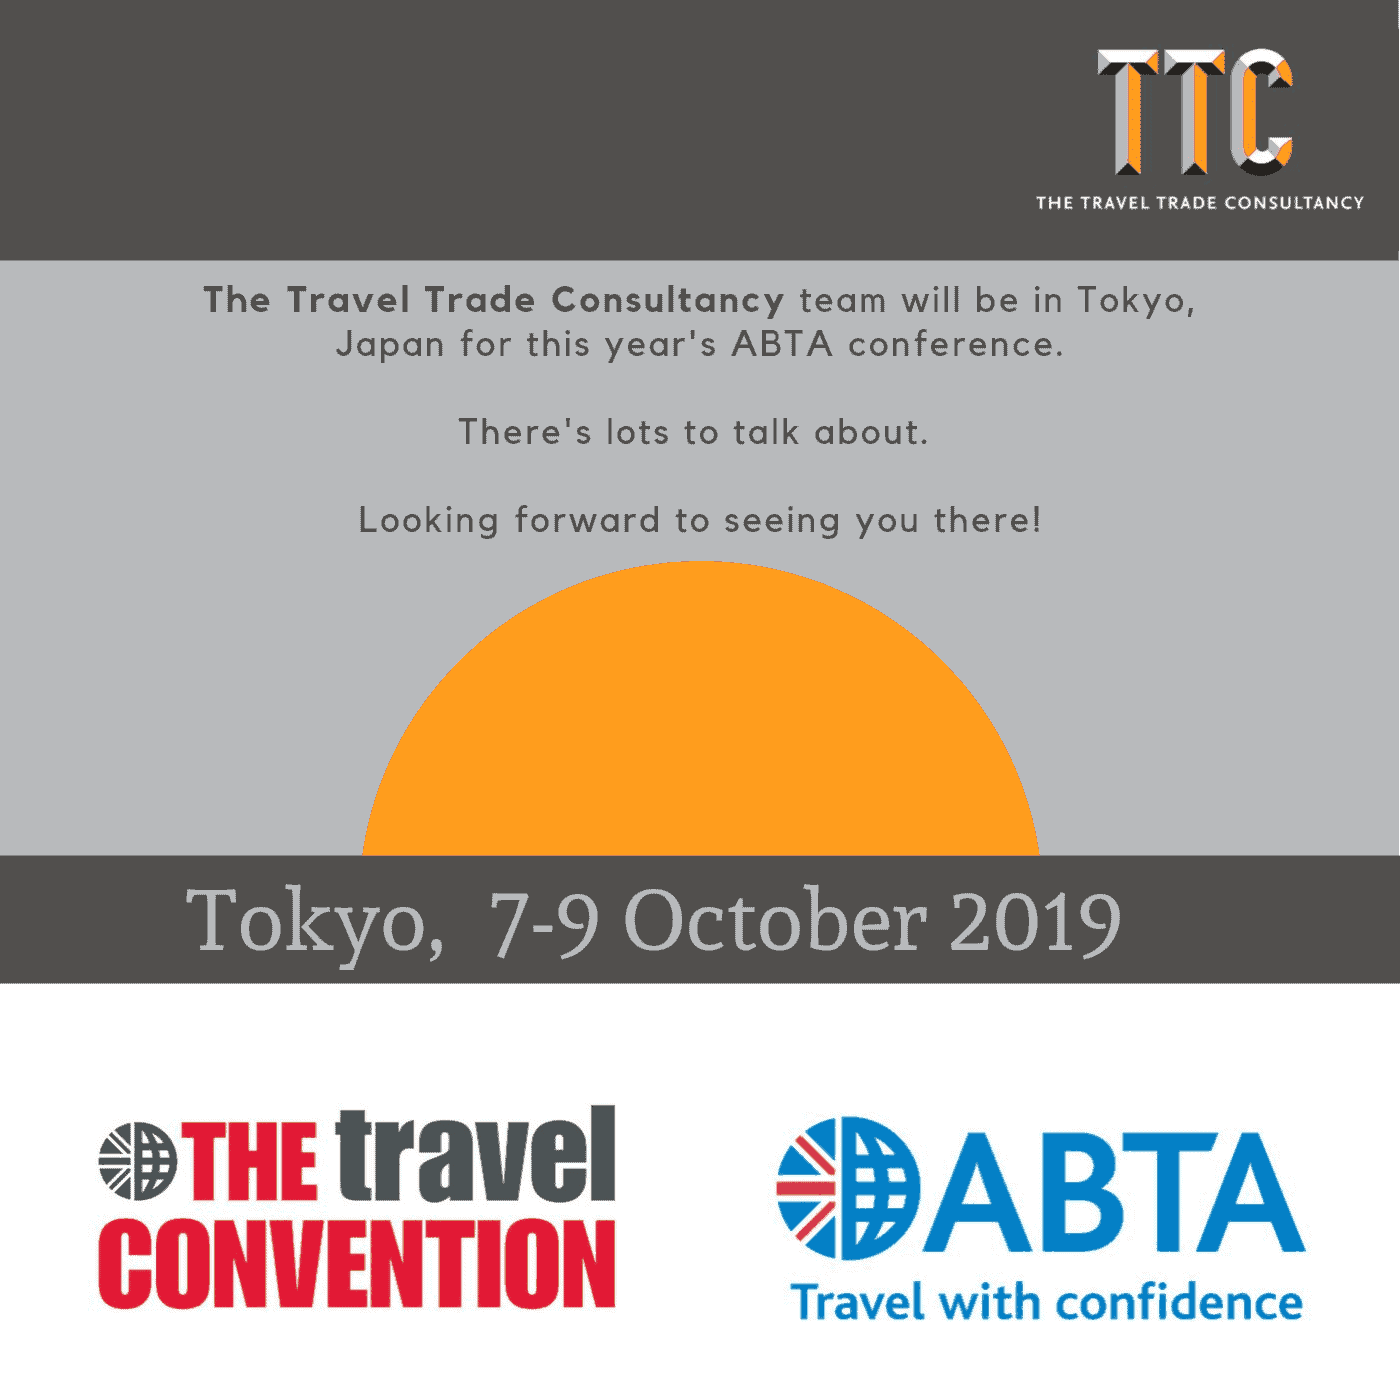 The TTC at the ABTA Travel Convention 2019